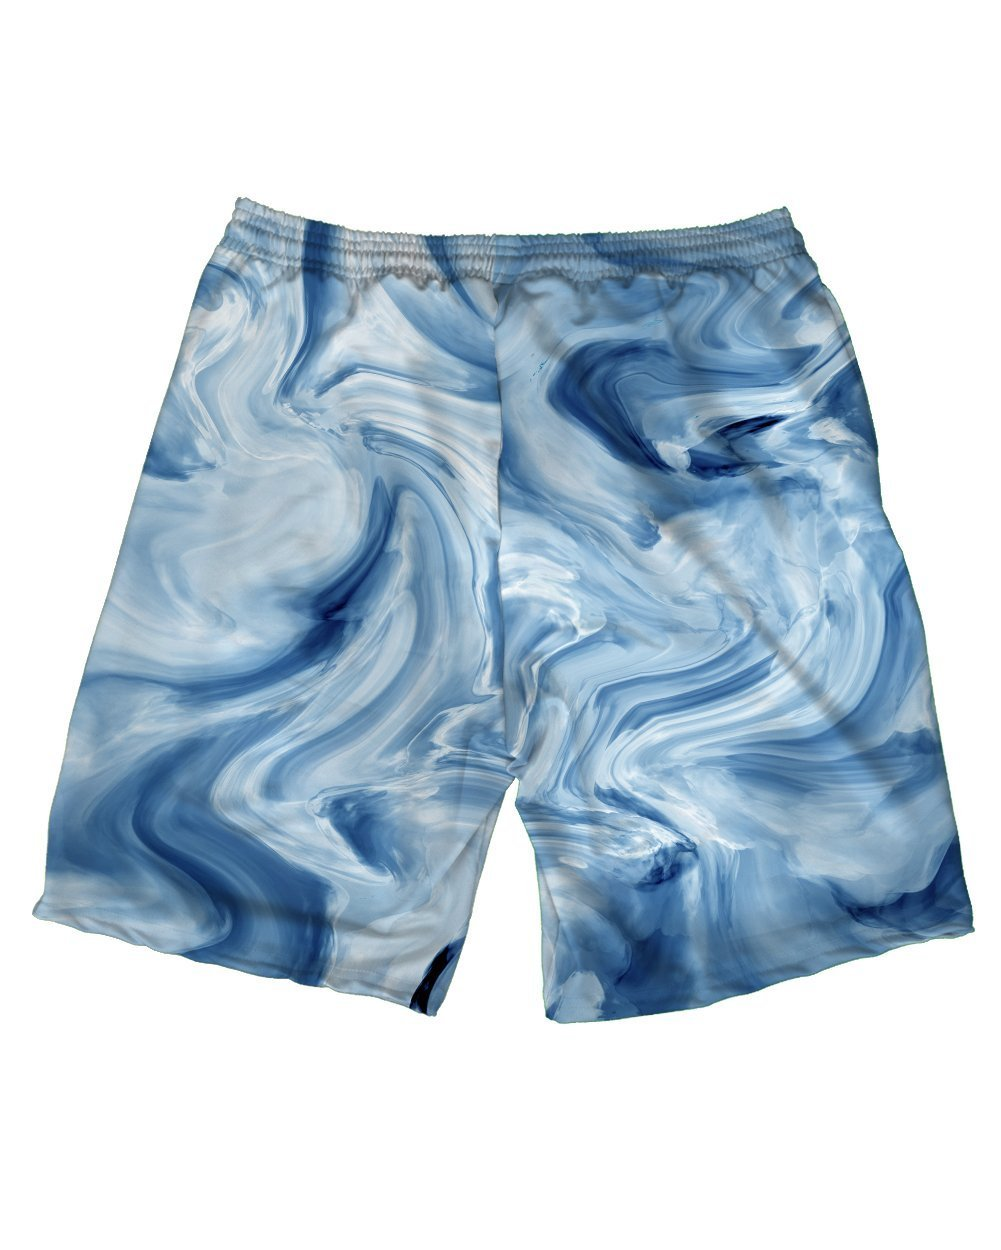 Blue Marble Men's Athletic Shorts-Back